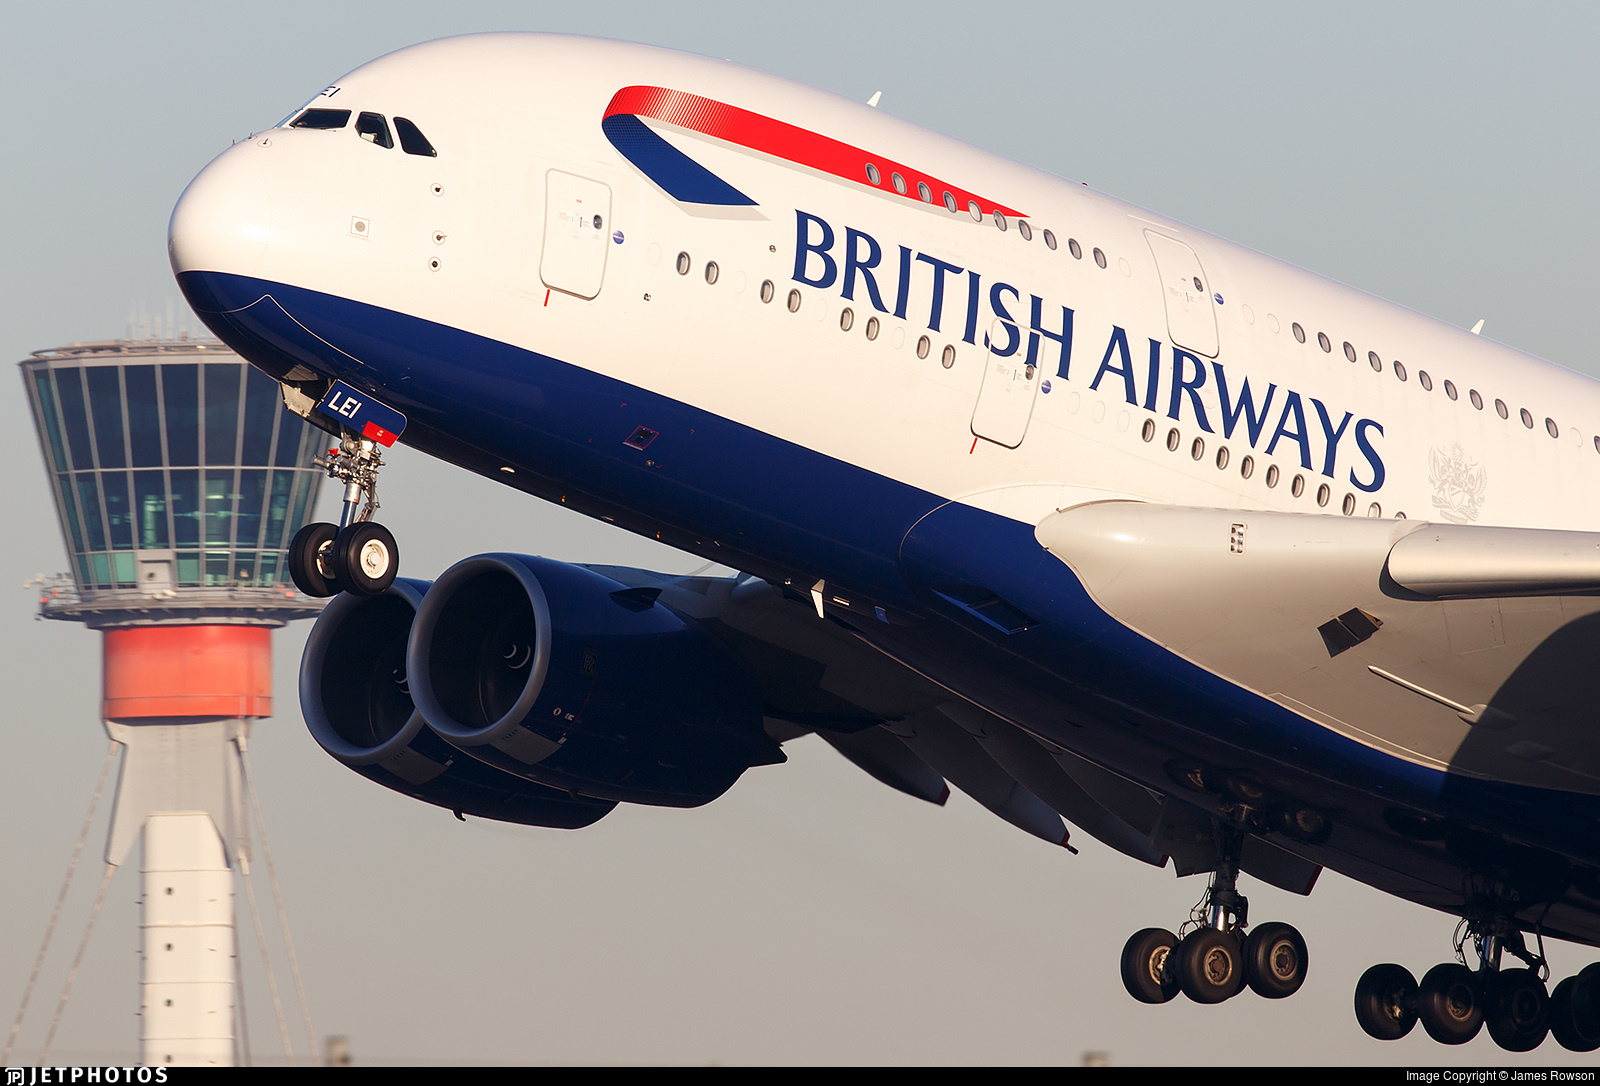 British Airways A380 departing London